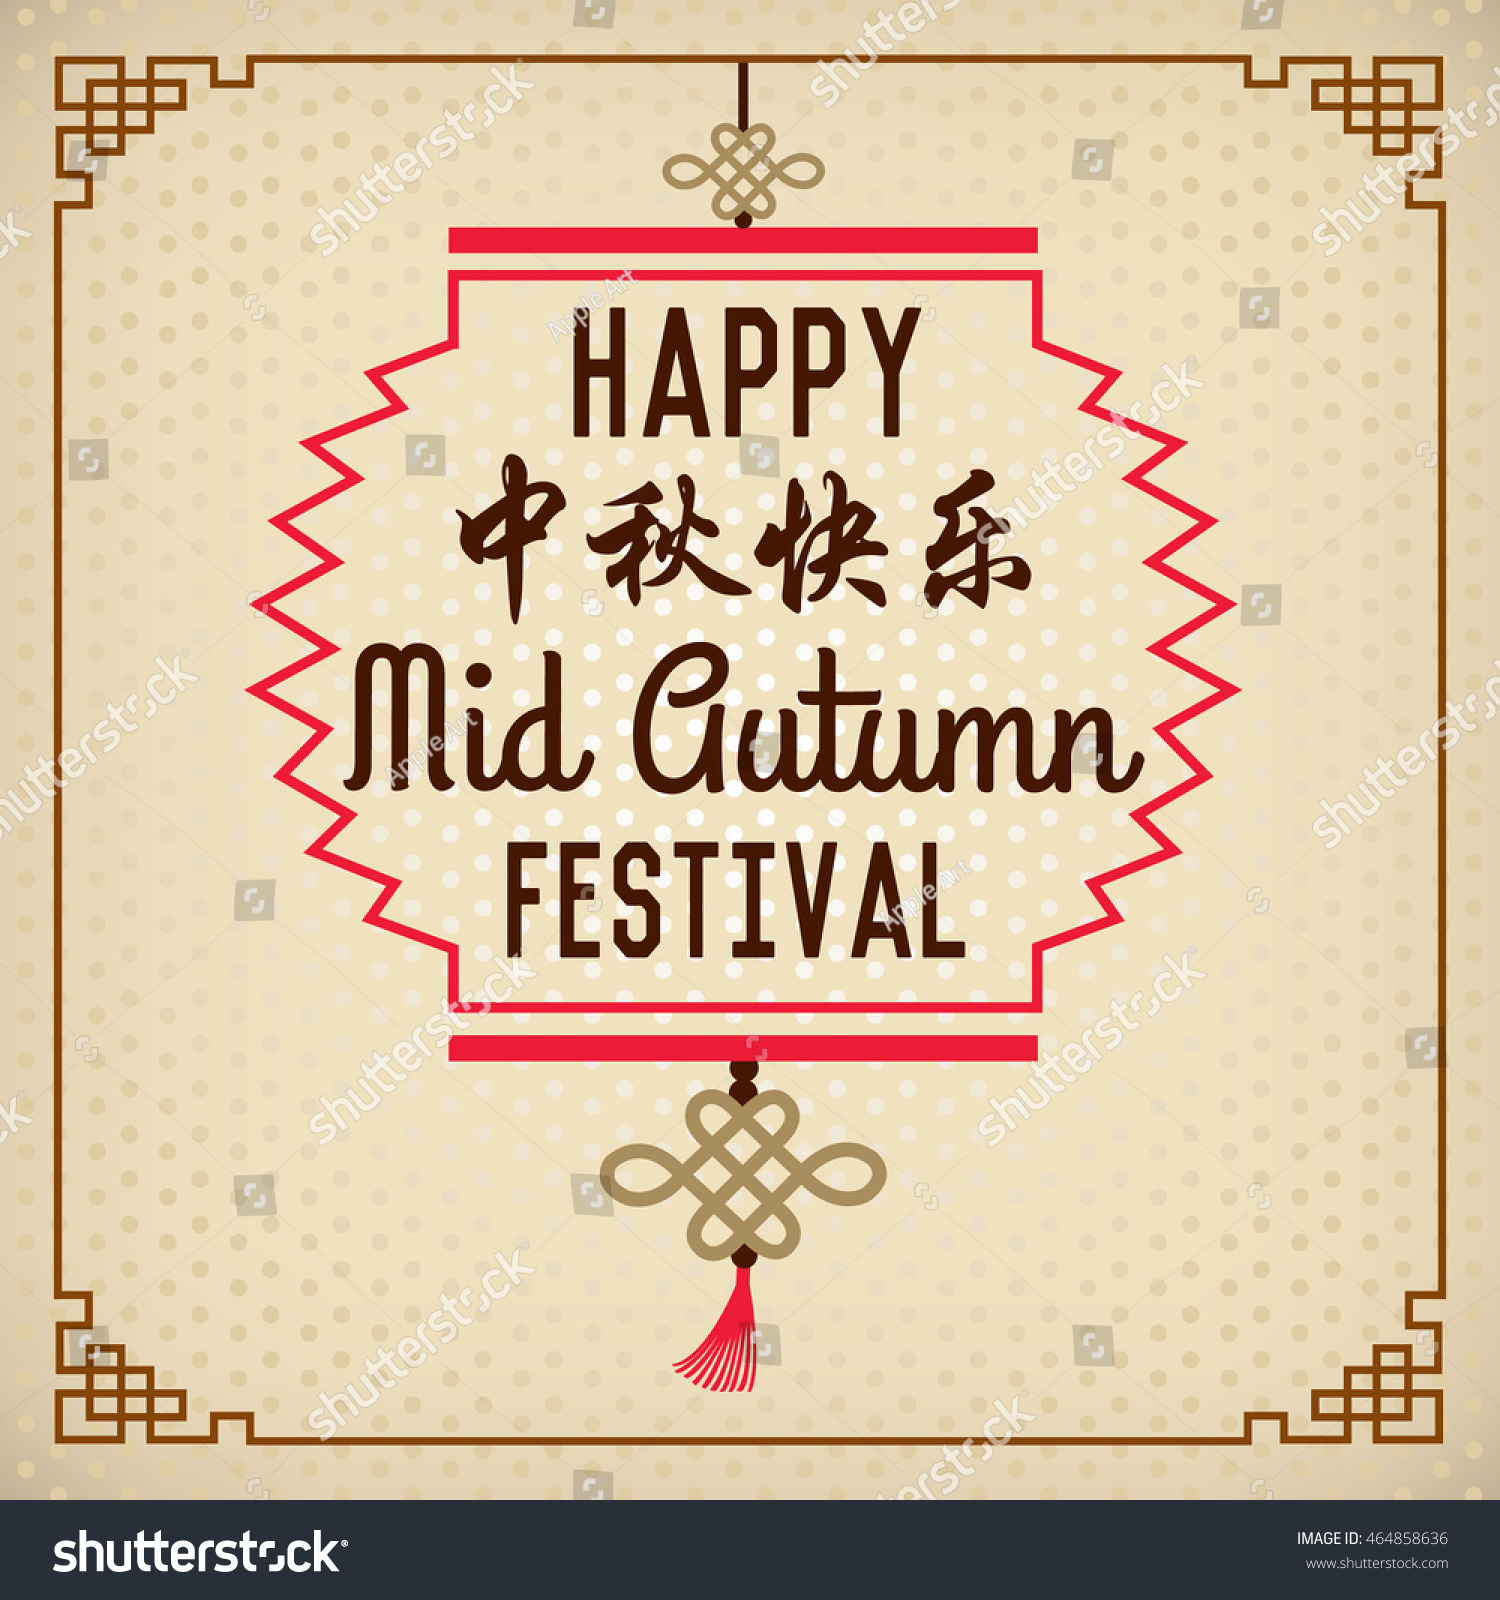 Happy mid autumn festival greeting chinese stock vector 464858636 happy mid autumn festival greeting chinese translation mid autumn festival kristyandbryce Choice Image